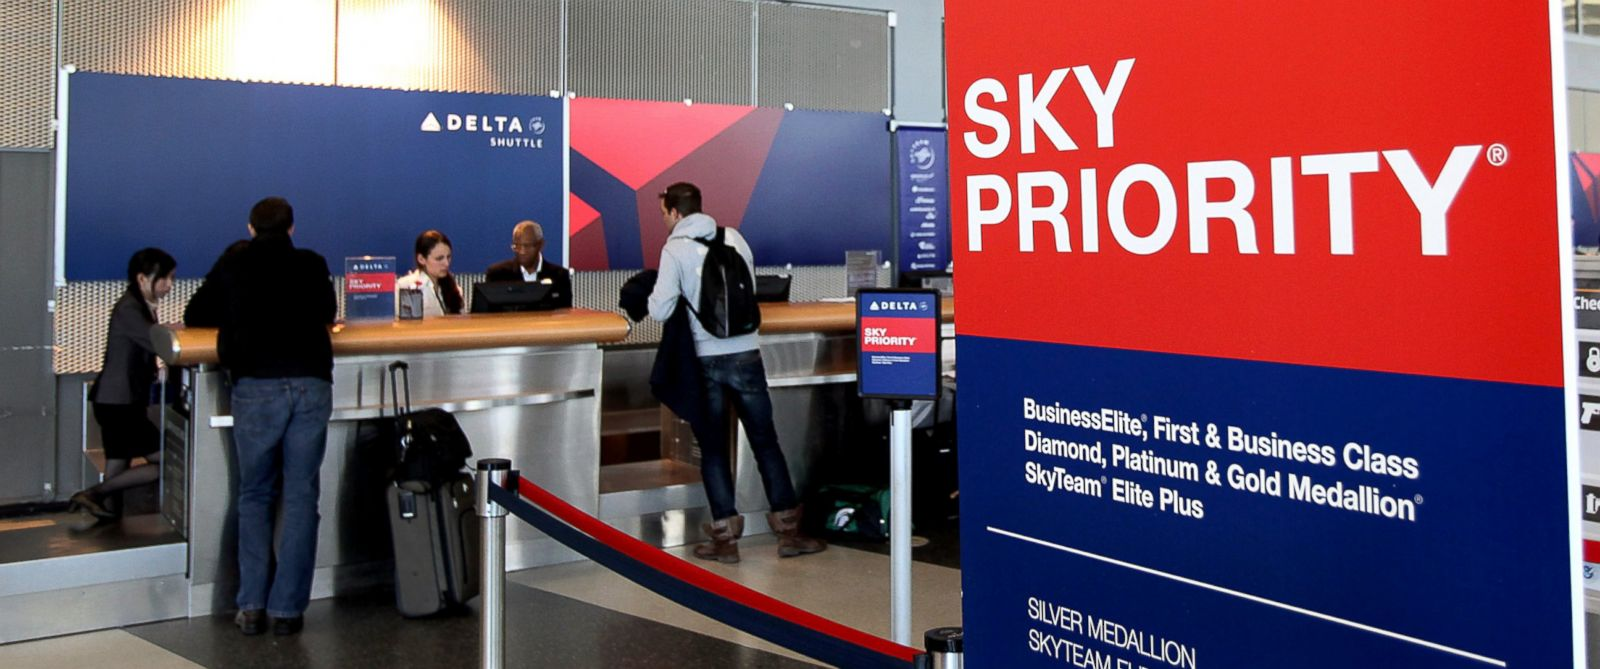 Passenger Rights Advocate 'Shocked' by Delta's Cheap ...